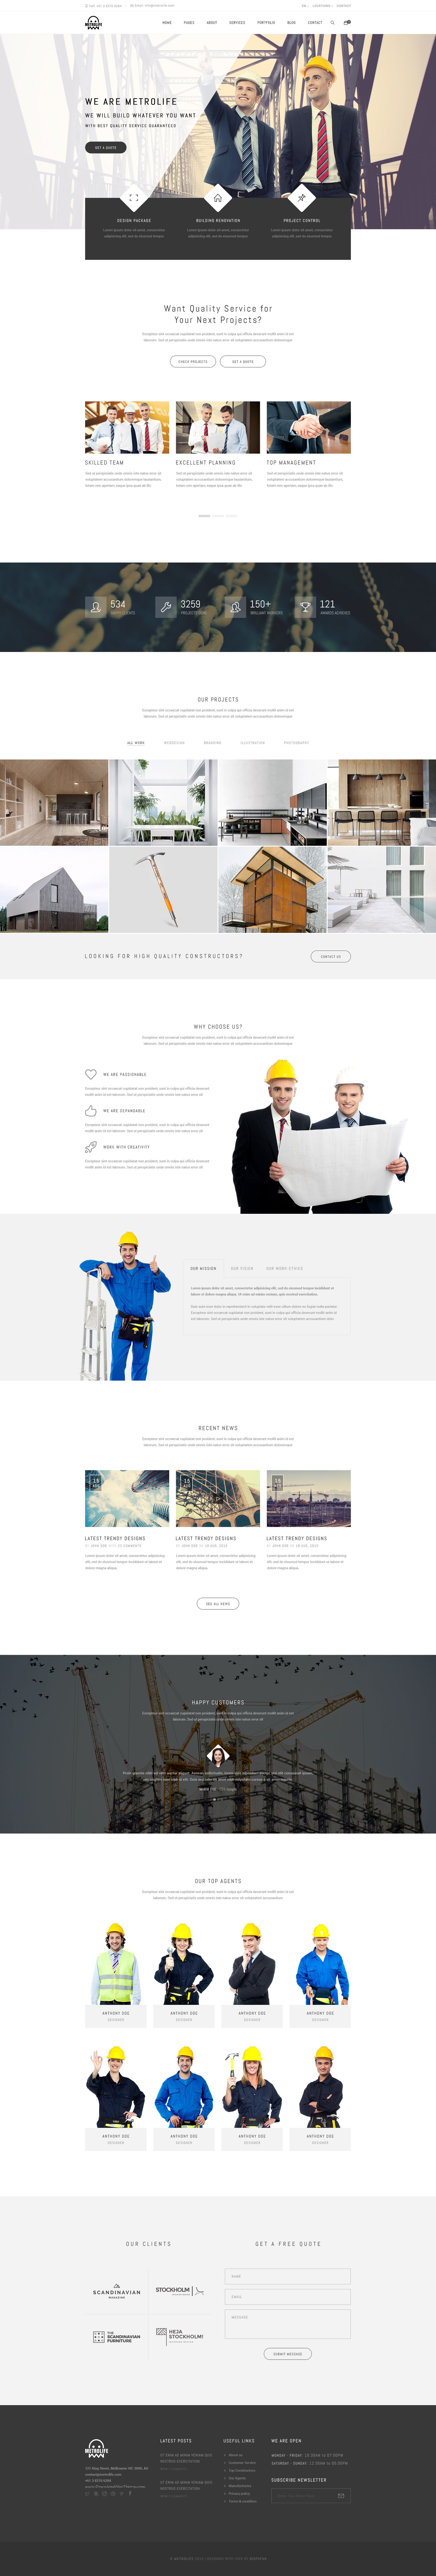 Metrolife responsive multipurpose html5 template pinterest minimal creative and professional website template for any type of corporate business magazine creative portfolio e commerce construction accmission Gallery